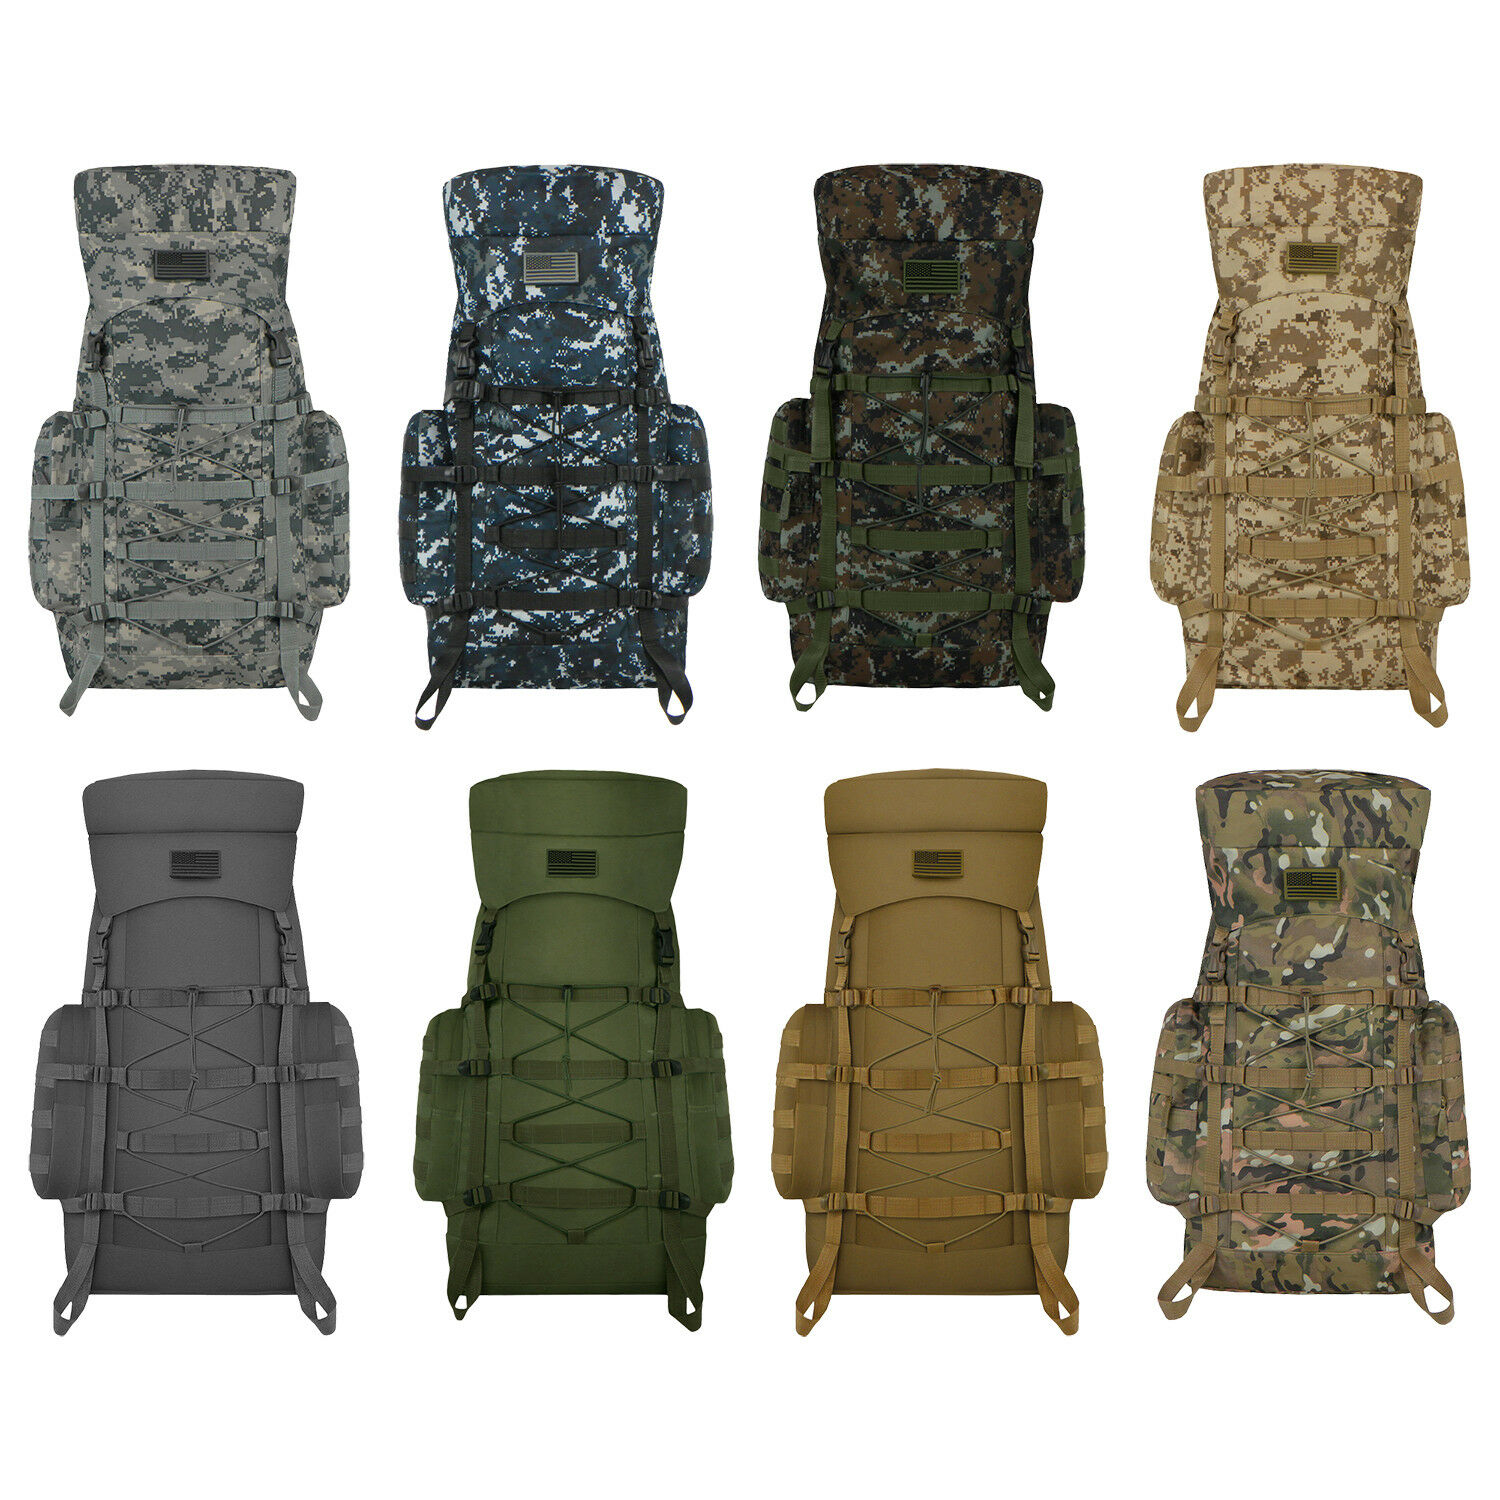 Military Tactical MOLLE Outdoor Bag Weather Resistant Backpack for Hik... - s l1600